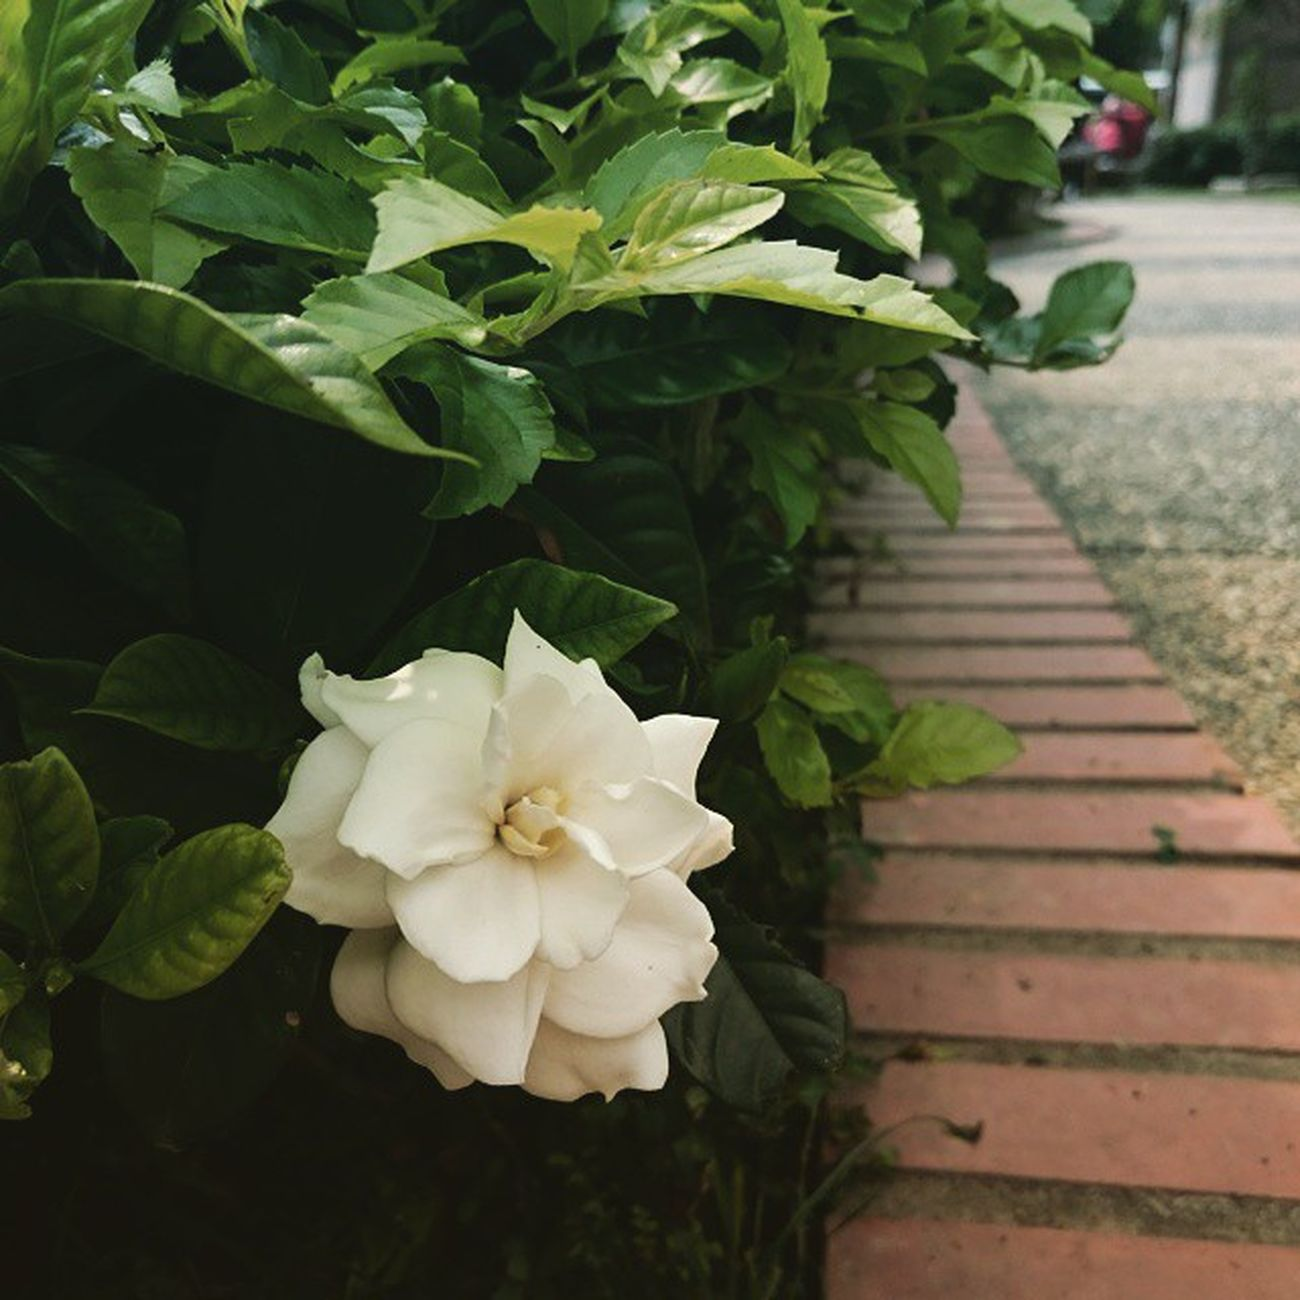 White Flower Blooming 白花 開花